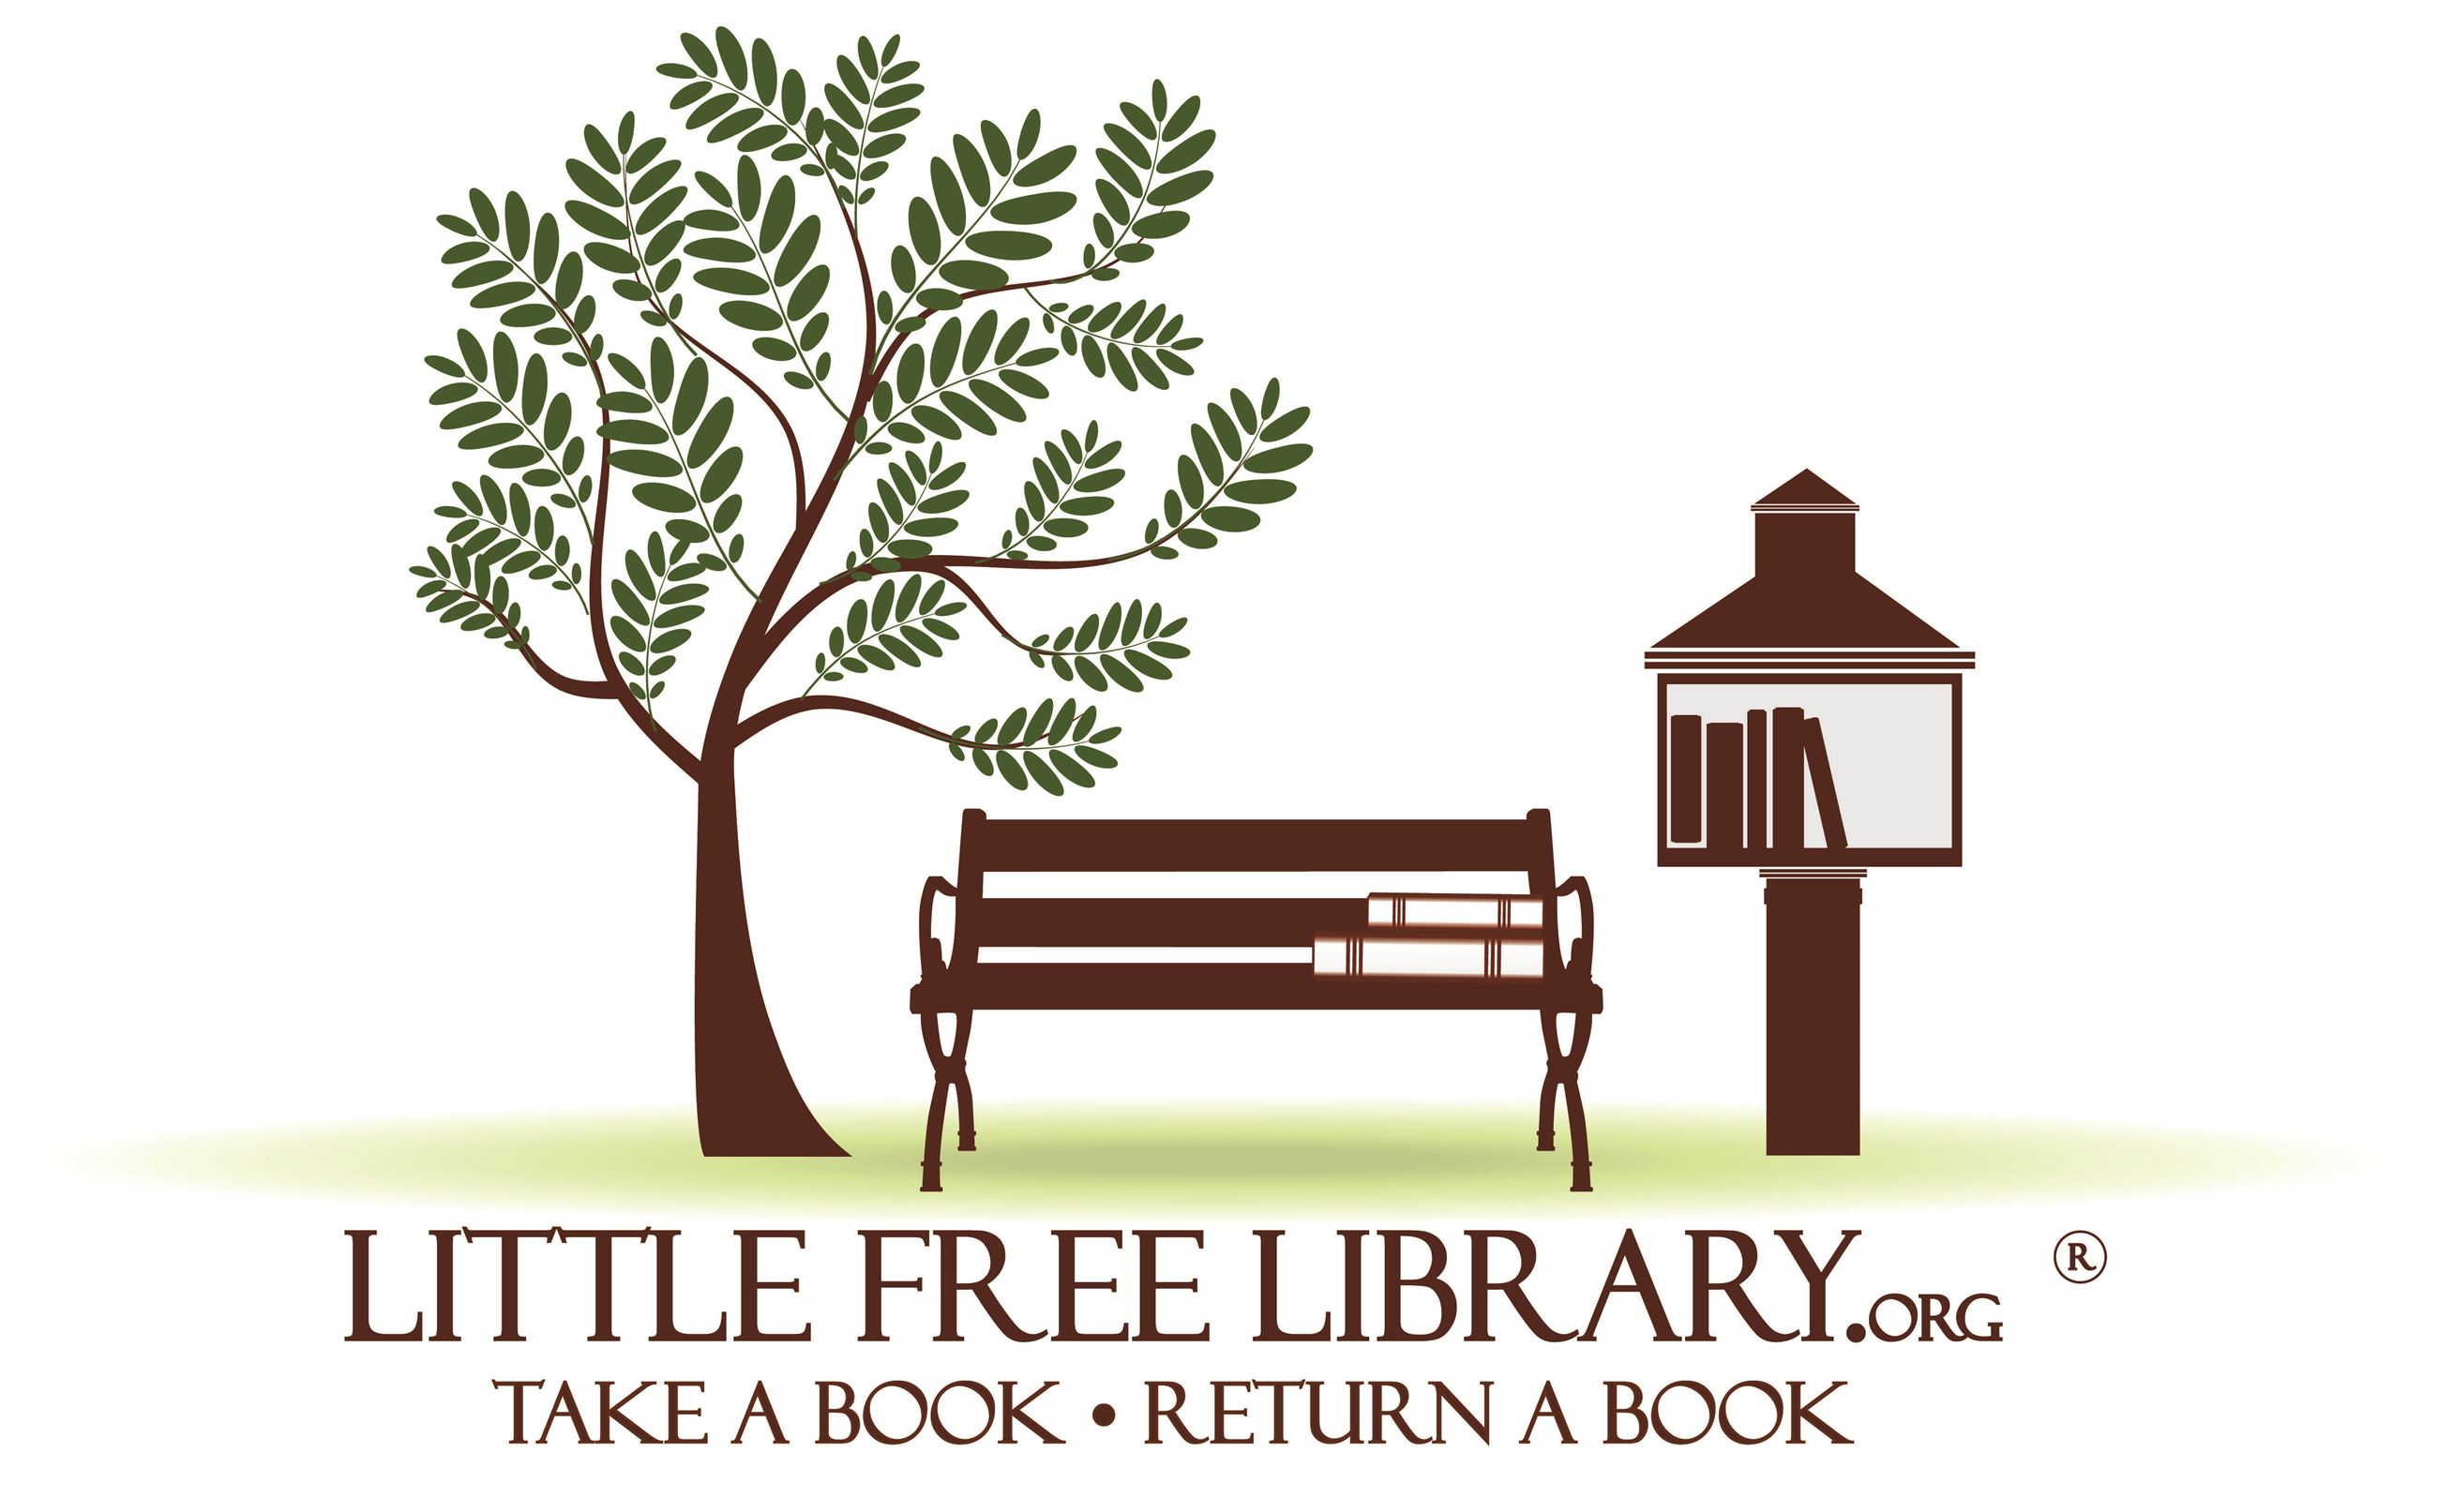 little free library logo Opens in new window